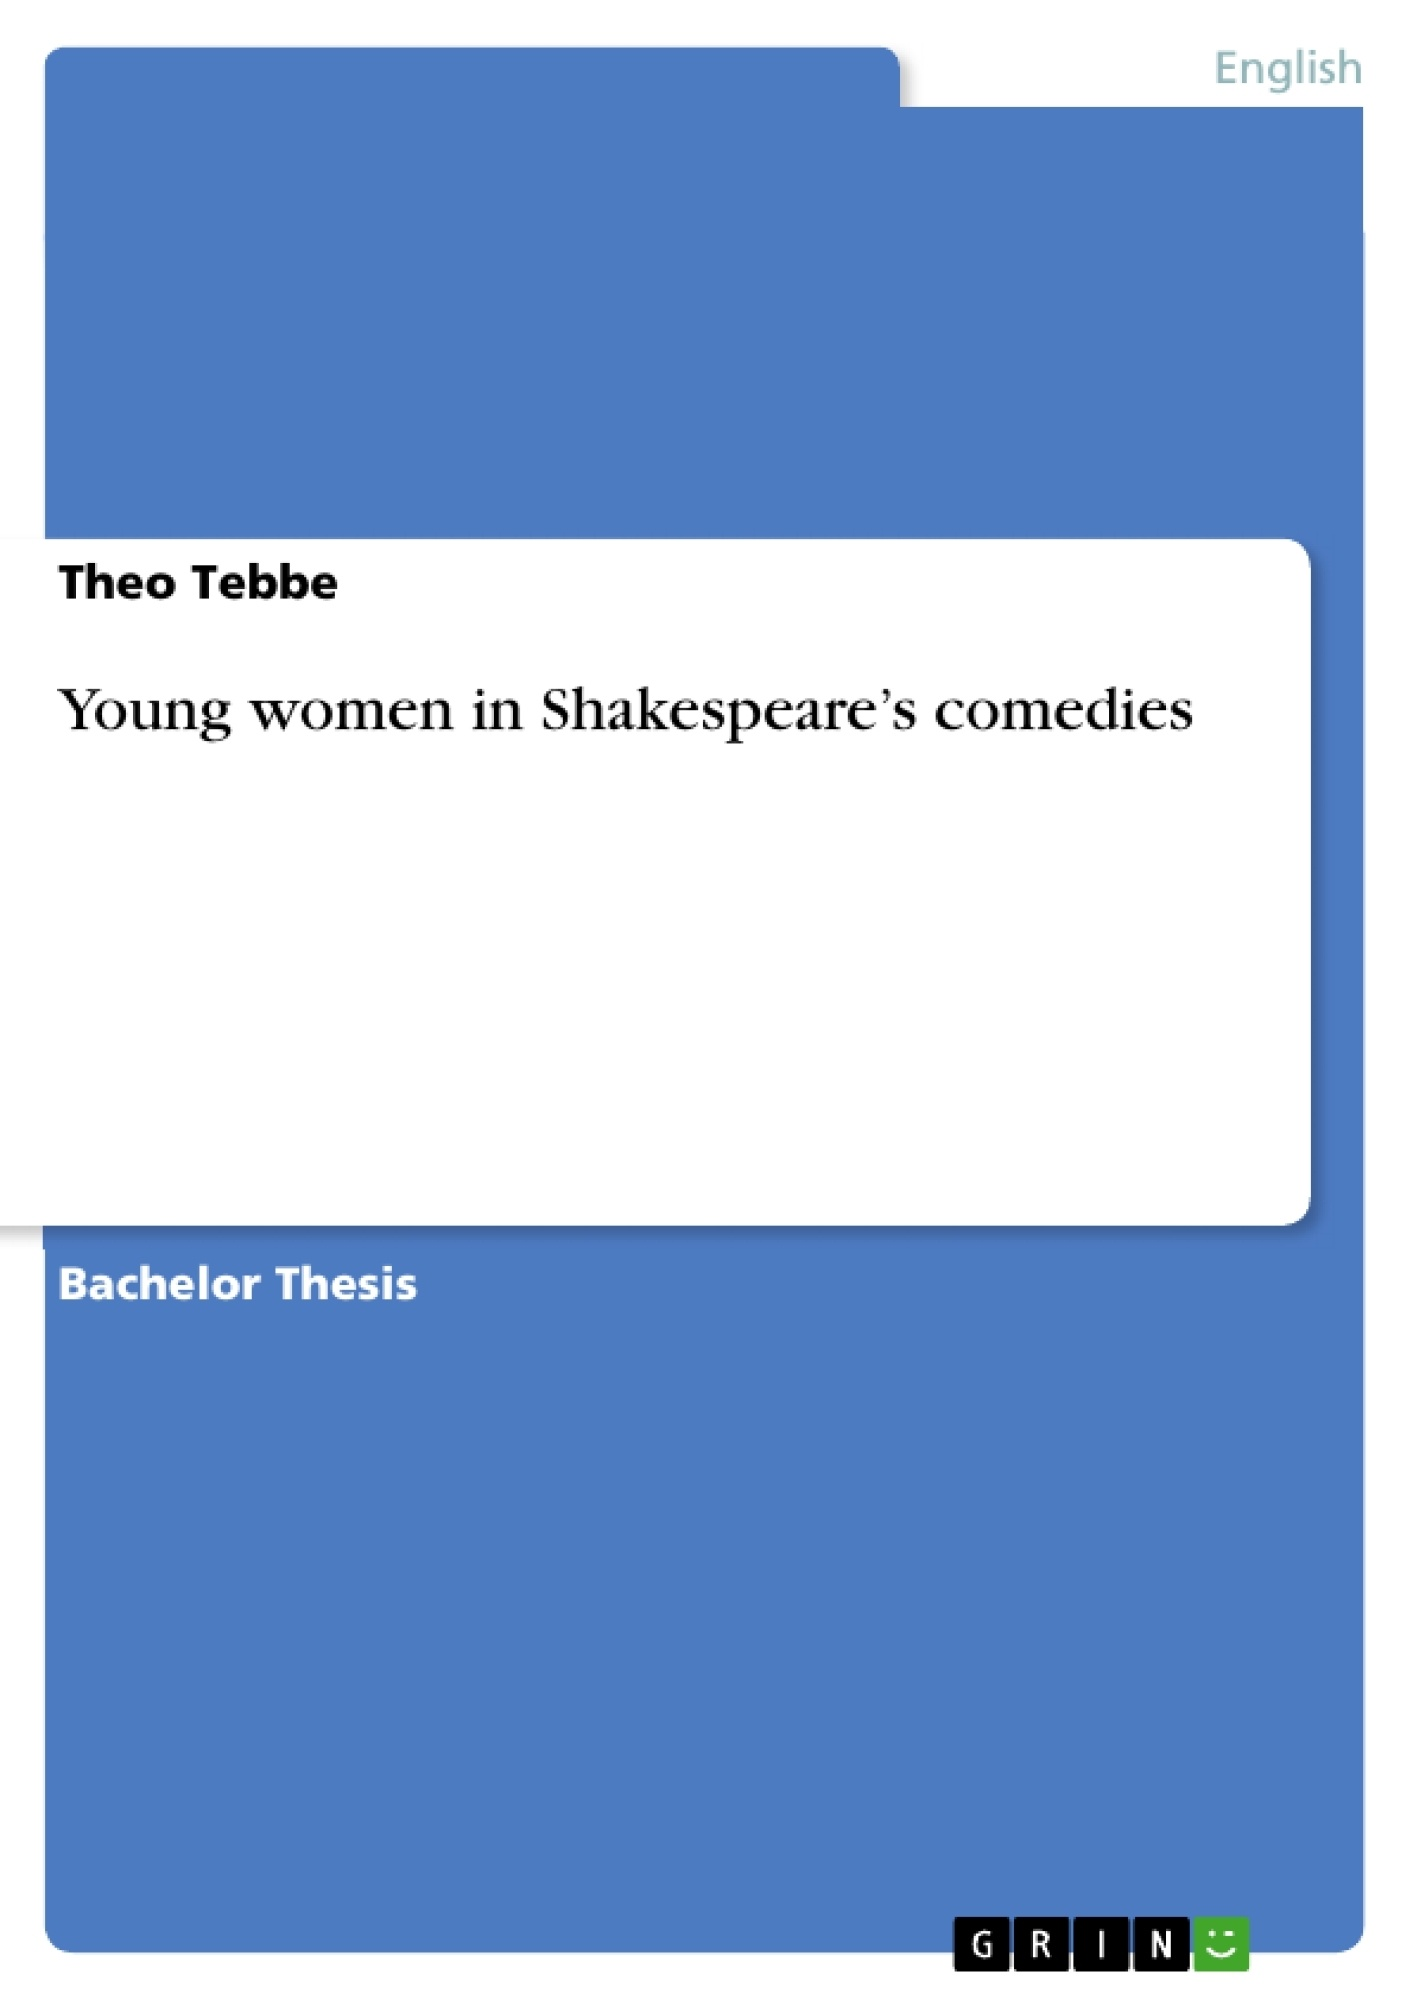 bachelor thesis shakespeare Young women in shakespeare's comedies - theo tebbe - bachelor thesis - english language and literature studies - literature - publish your bachelor's or master's.